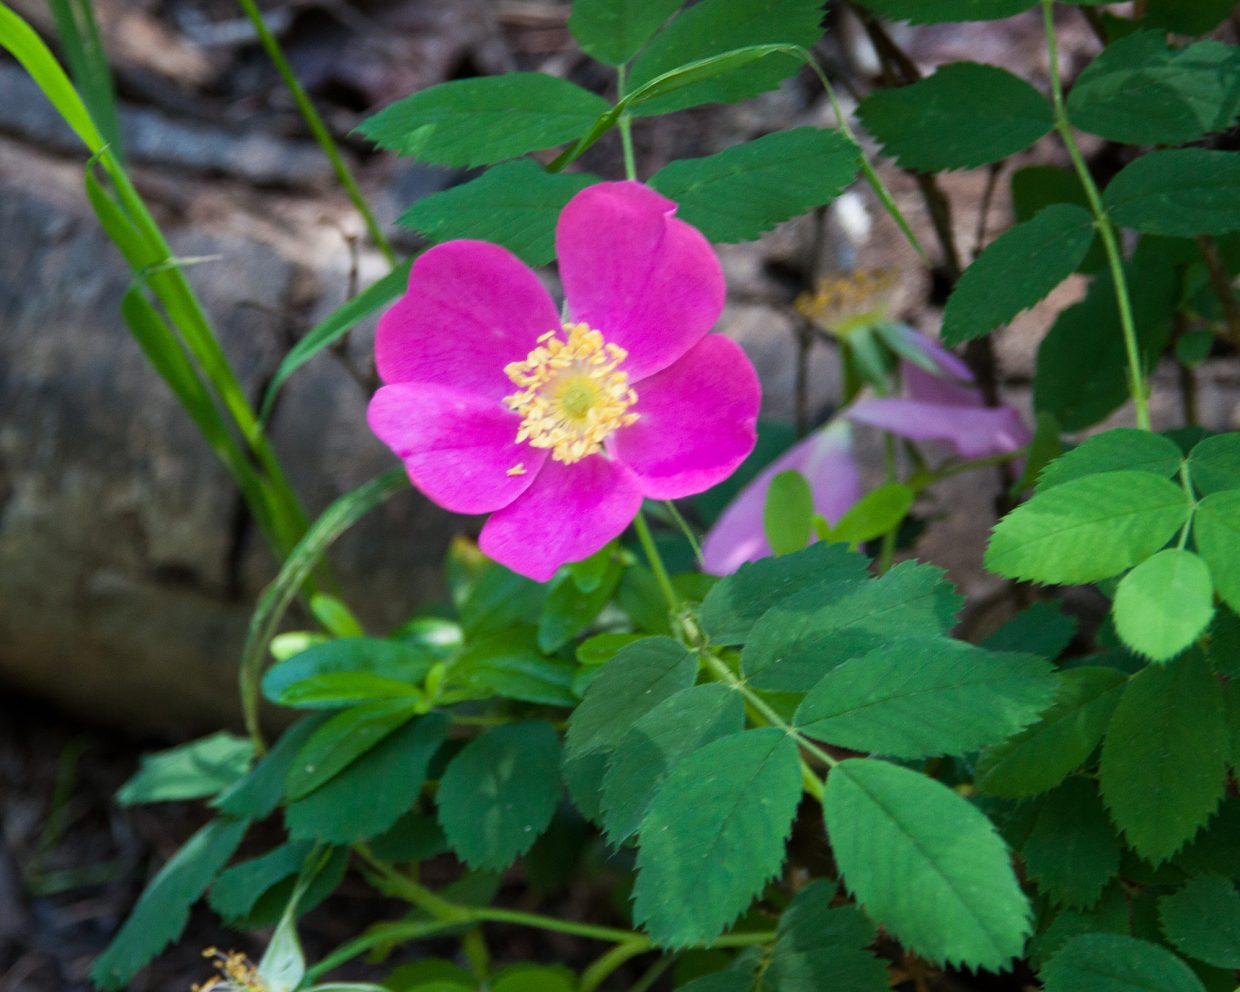 One of many wild roses on this trail. Submitted by G. Fredric Reynolds.